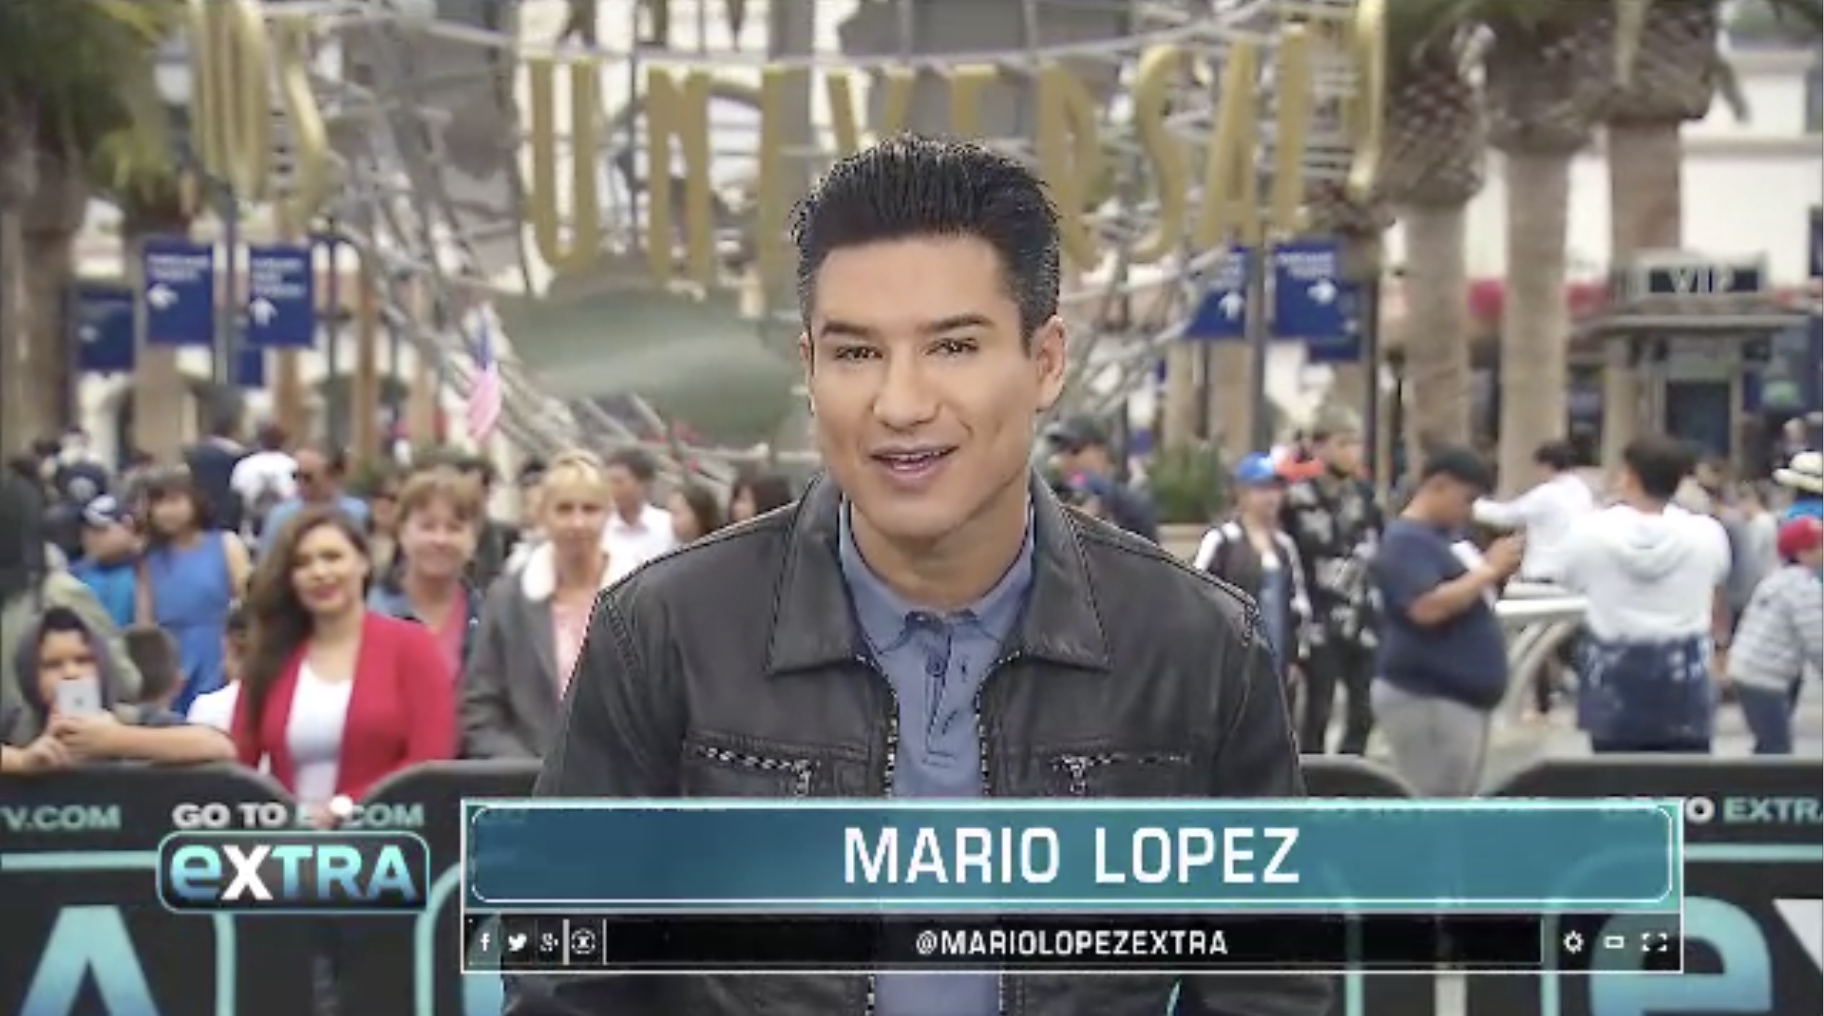 Mario Lopez at Extra Tv